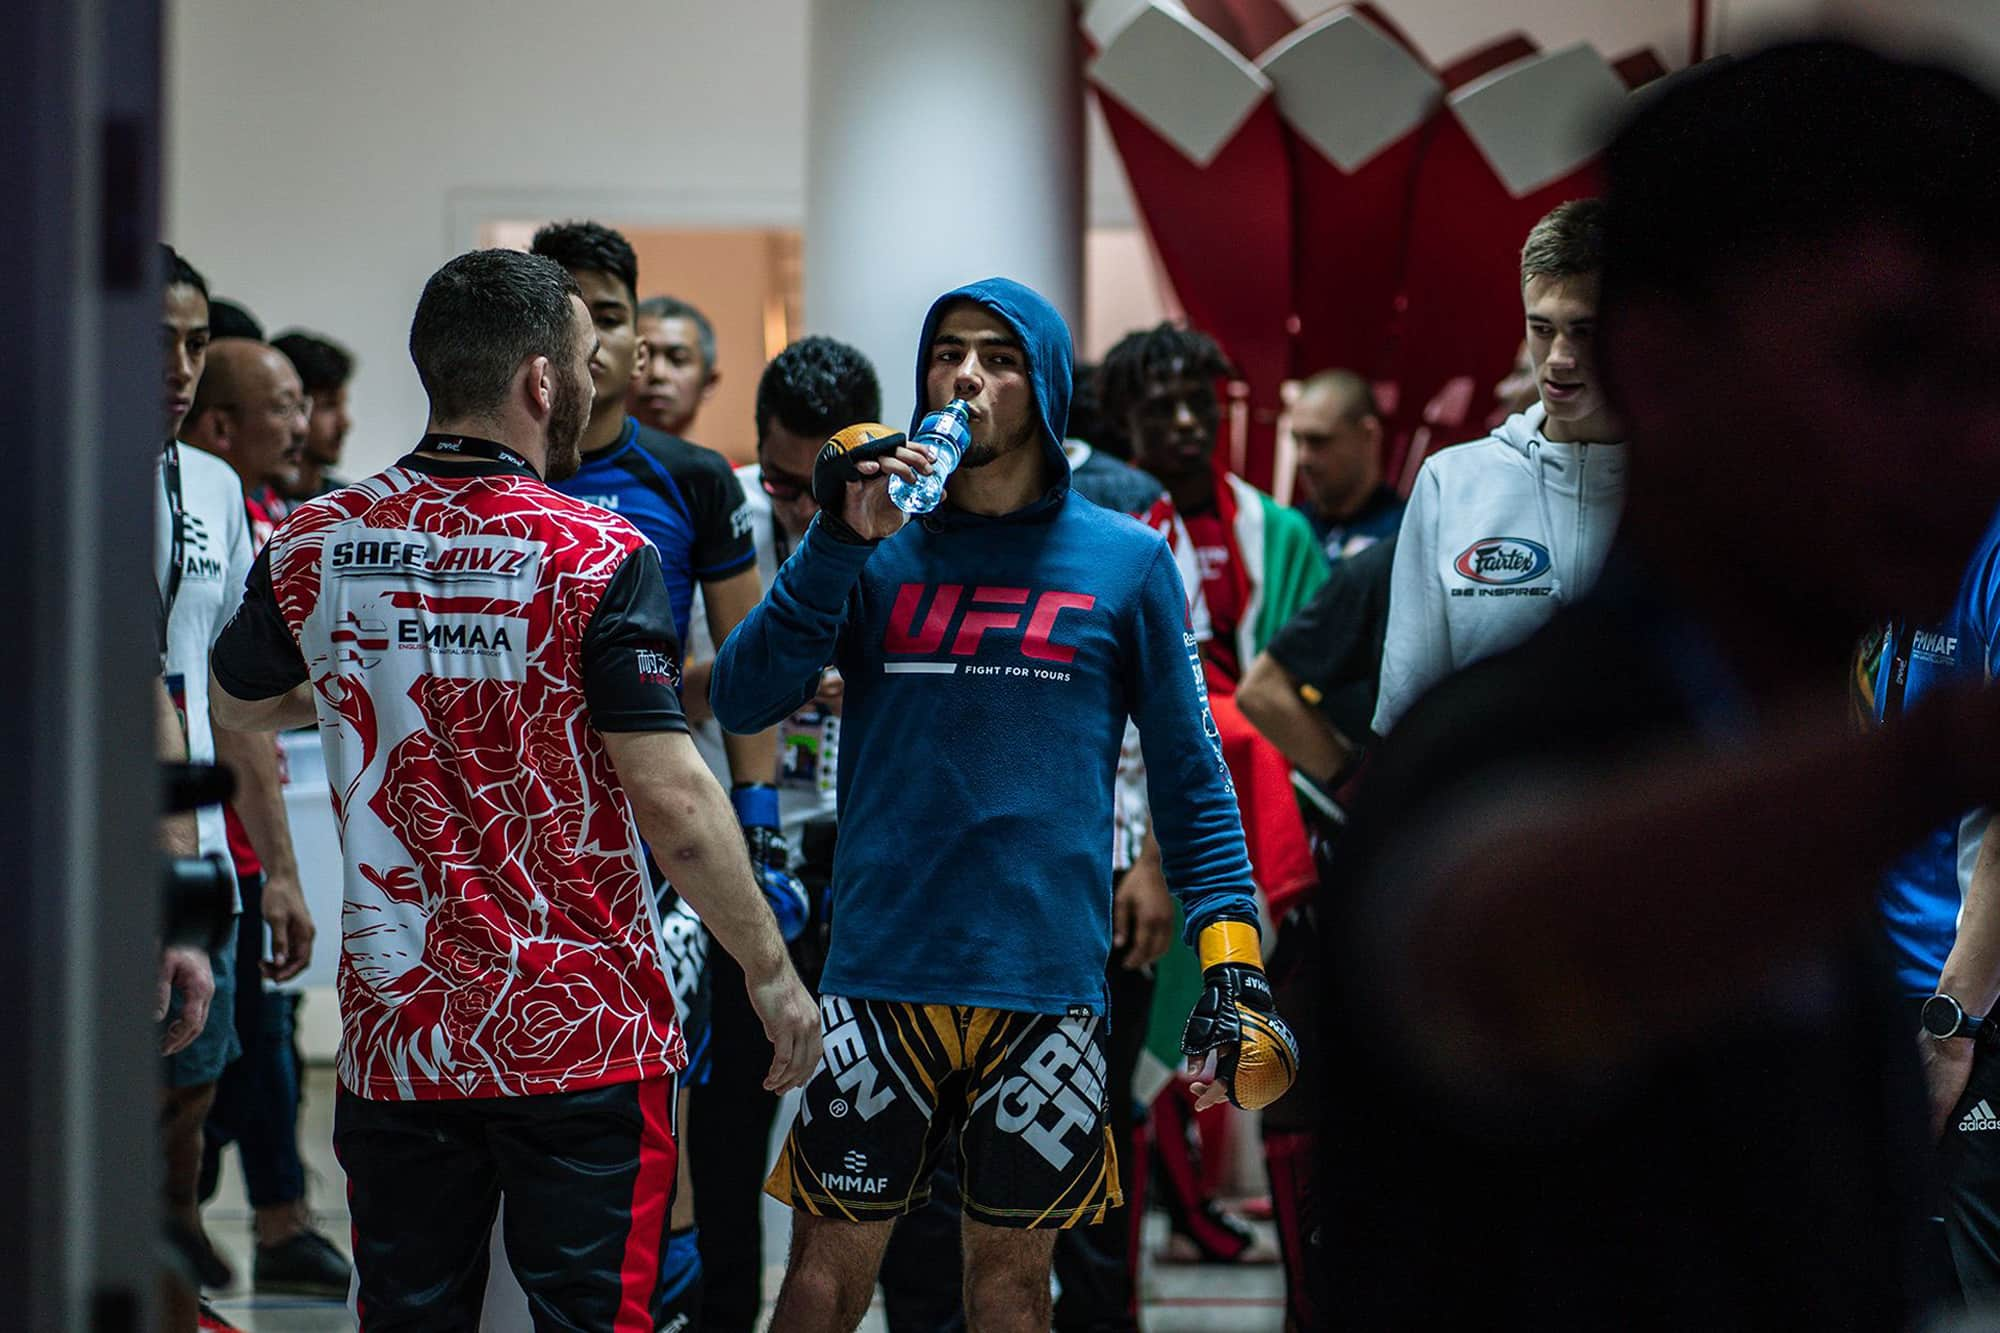 IMMAF Athletes Commission sets objectives to support pro MMA transition